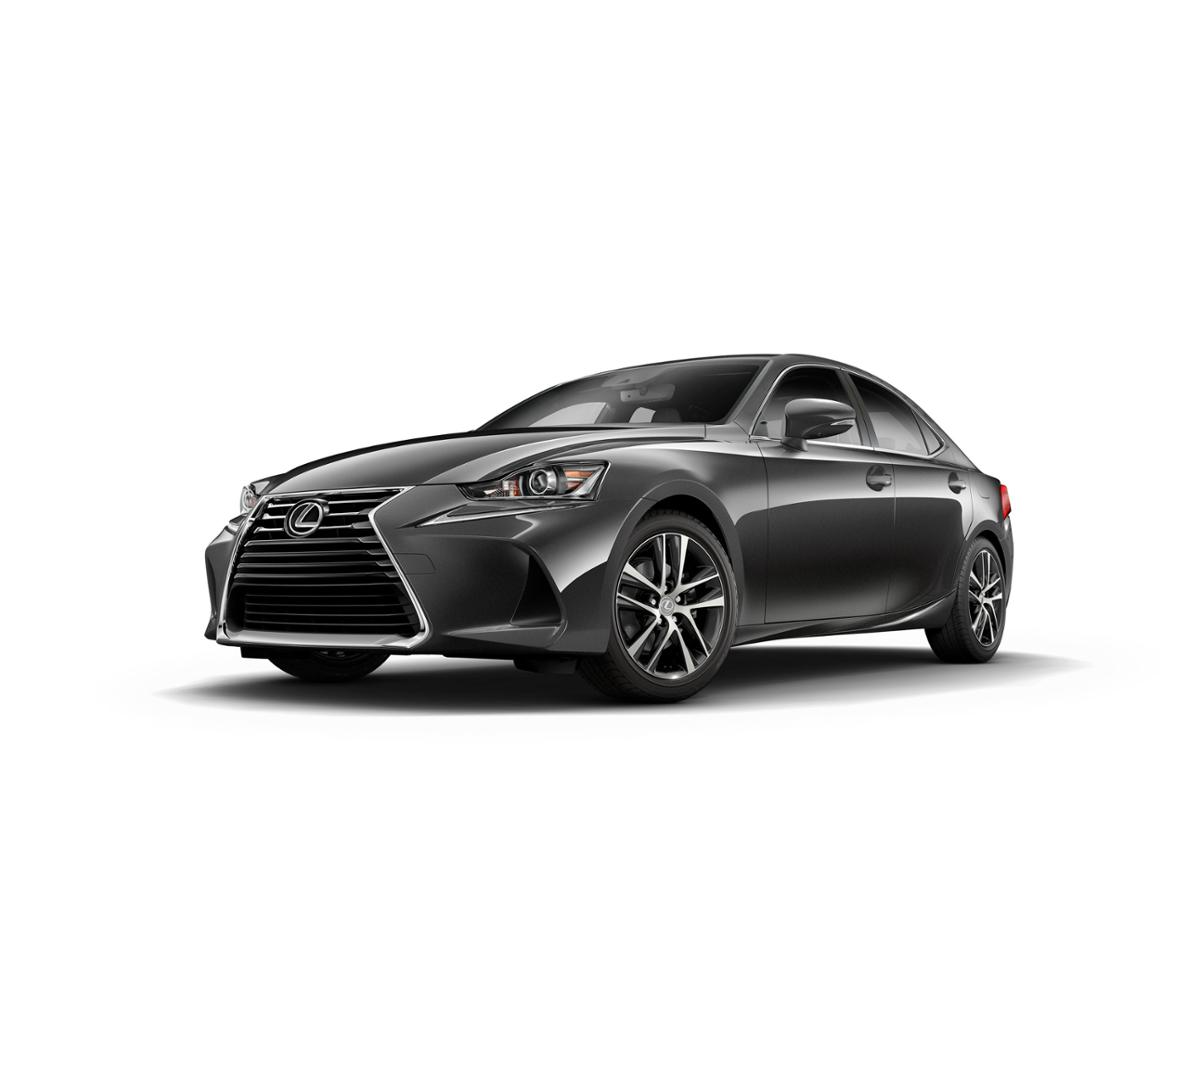 2019 Lexus IS 300 Vehicle Photo in Henderson, NV 89011